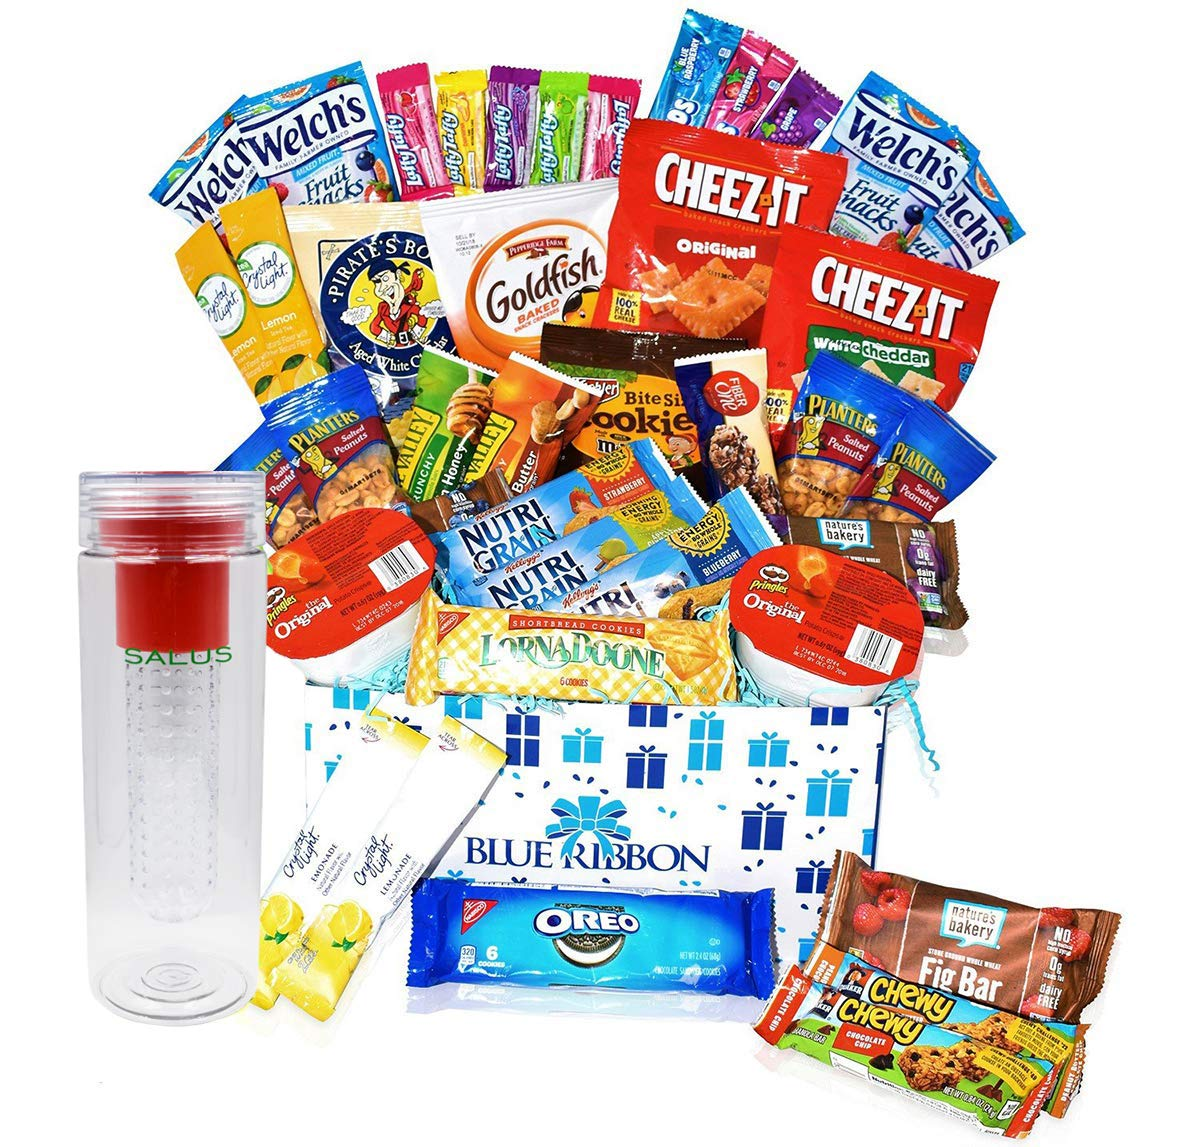 Care Package - Great for Camp, Summer , College Students , Finals, Military, Hospitals , Women and Men - Snack Boxes Gift Variety with Salus Water Bottle